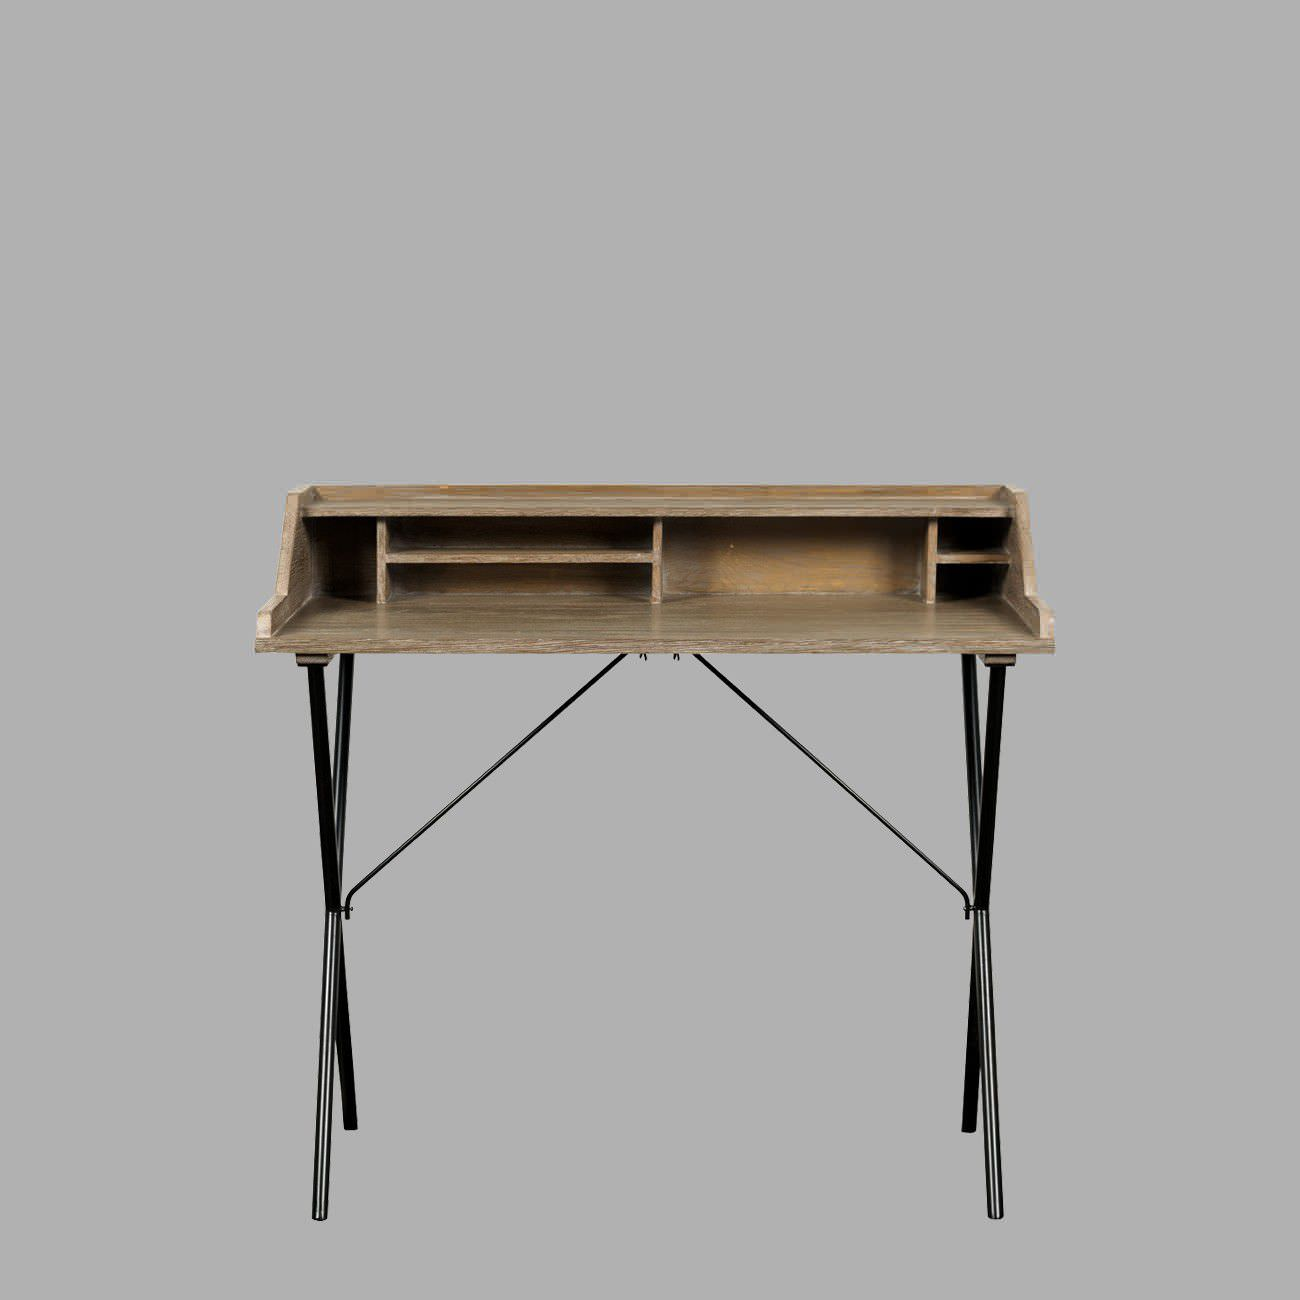 Wooden Desk Metal Traditional With Storage Brice Blanc D